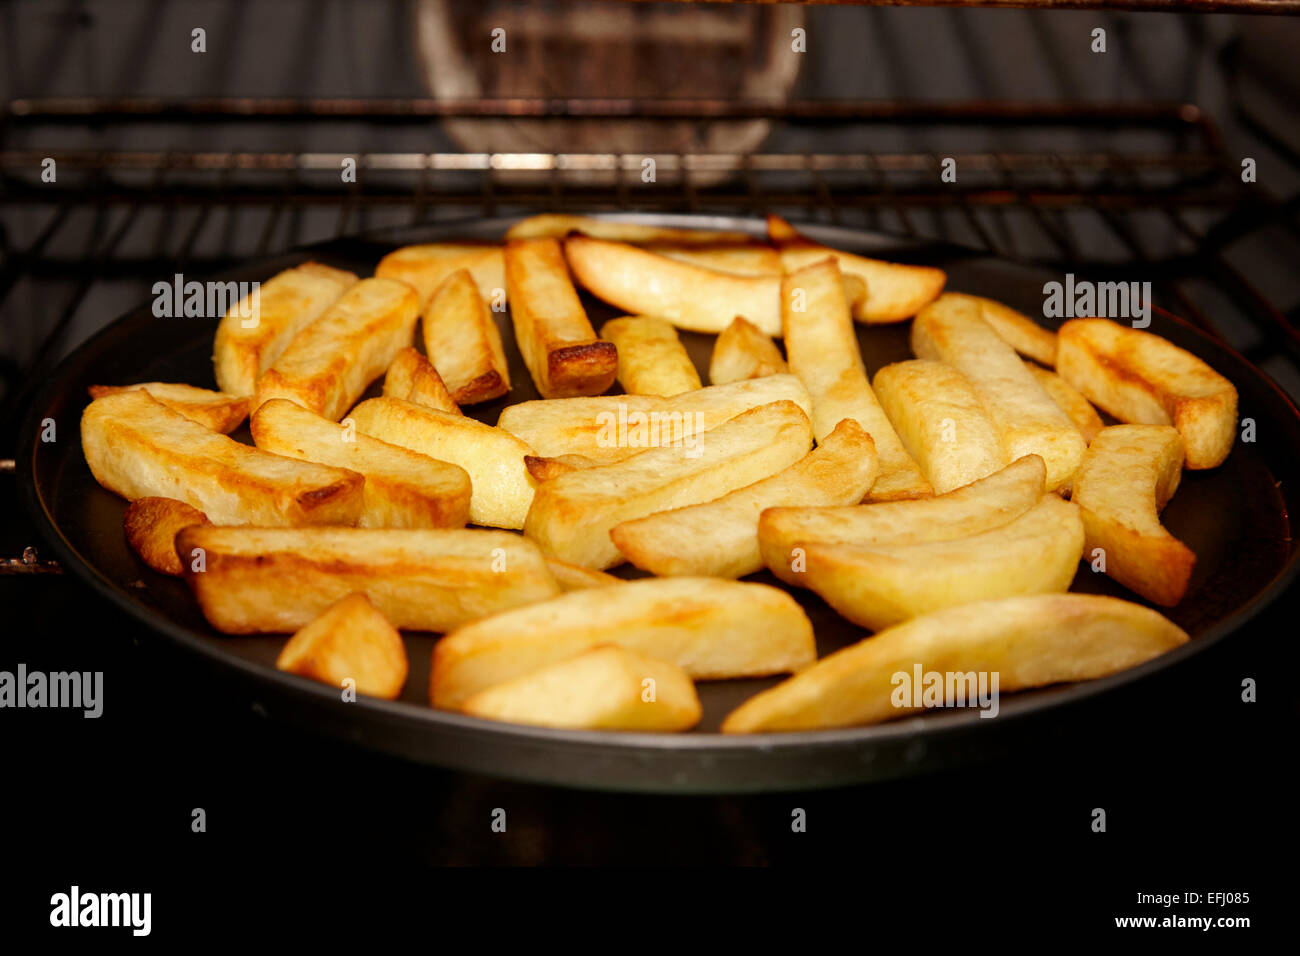 Fast Cooking Ovens Cooking Oven Chips In The Oven Stock Photo Royalty Free Image